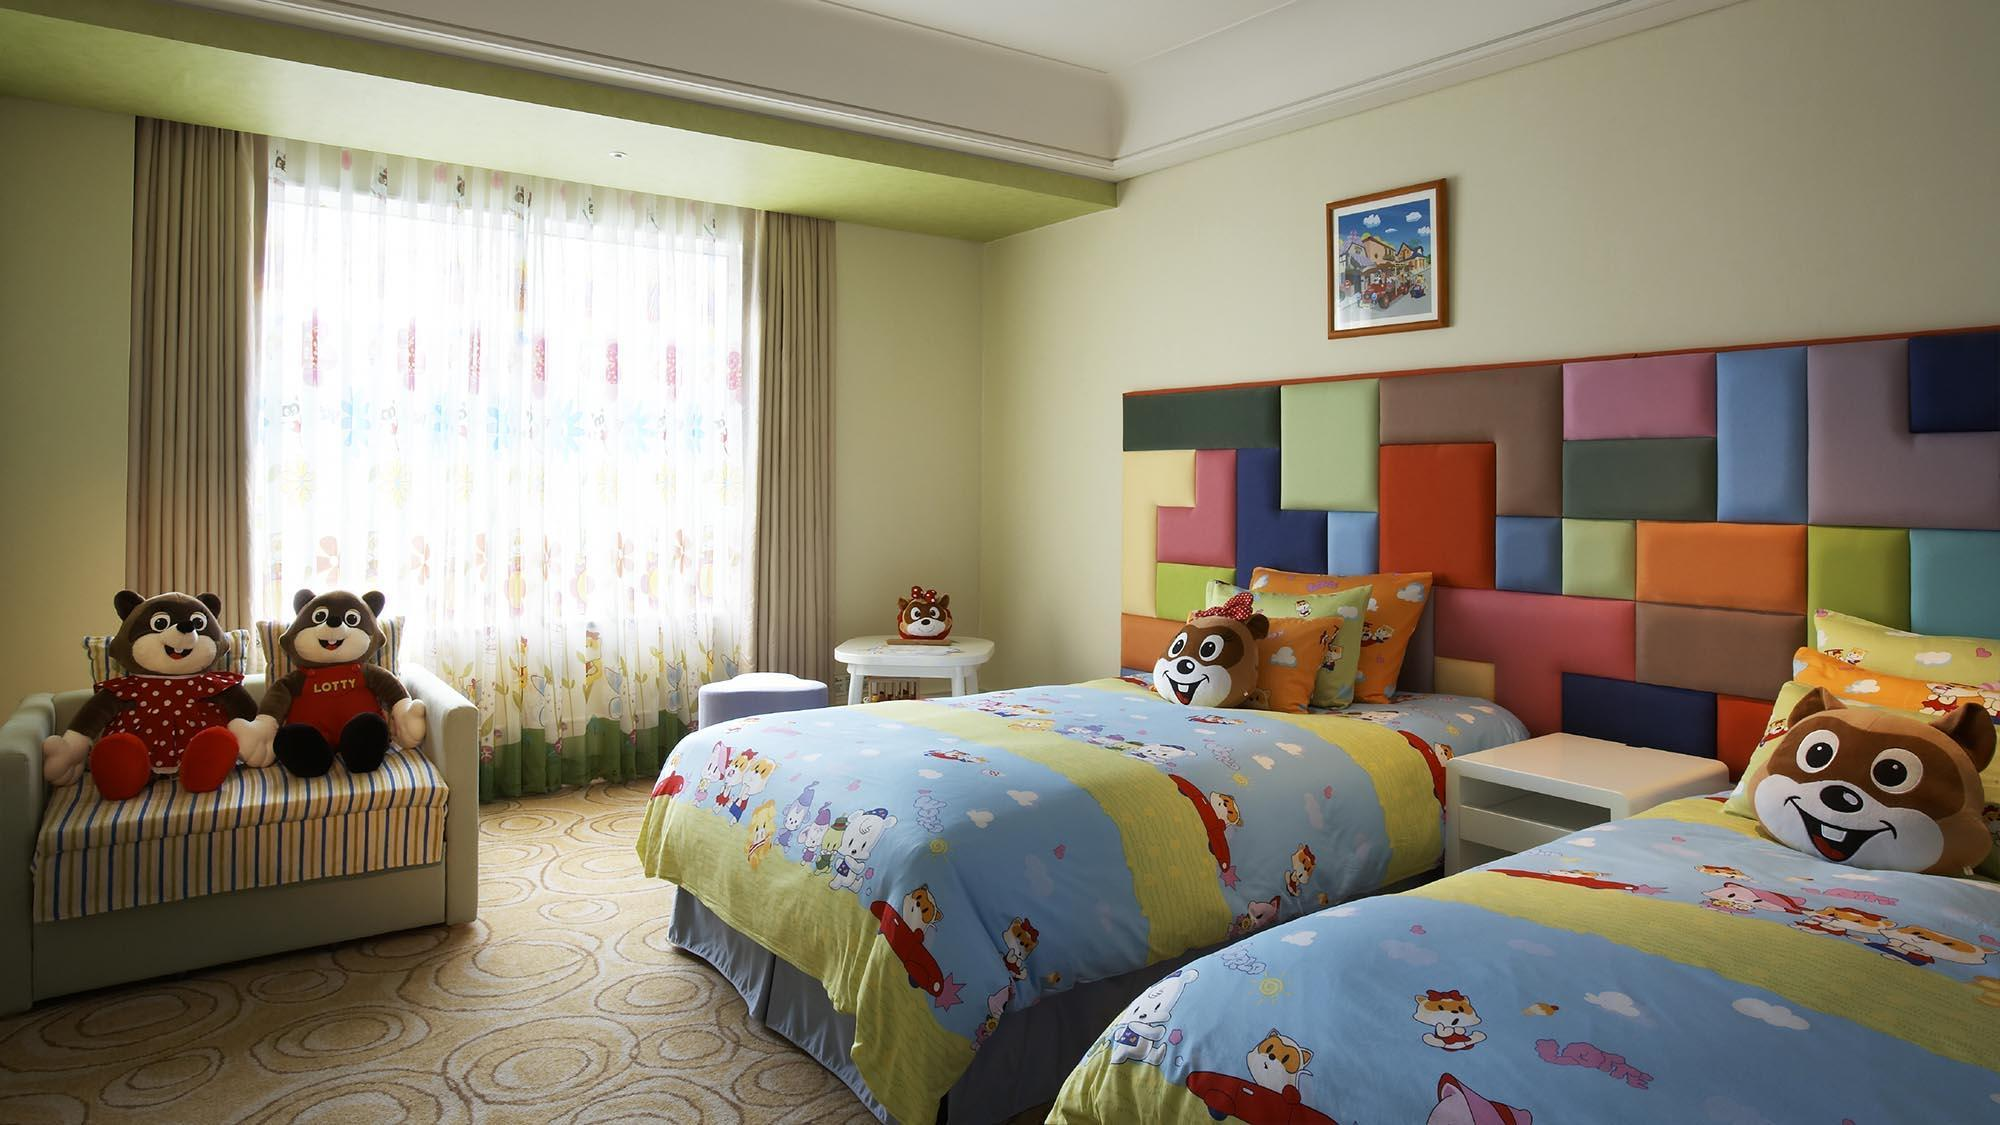 Cameră Character twin (Character Twin Room)